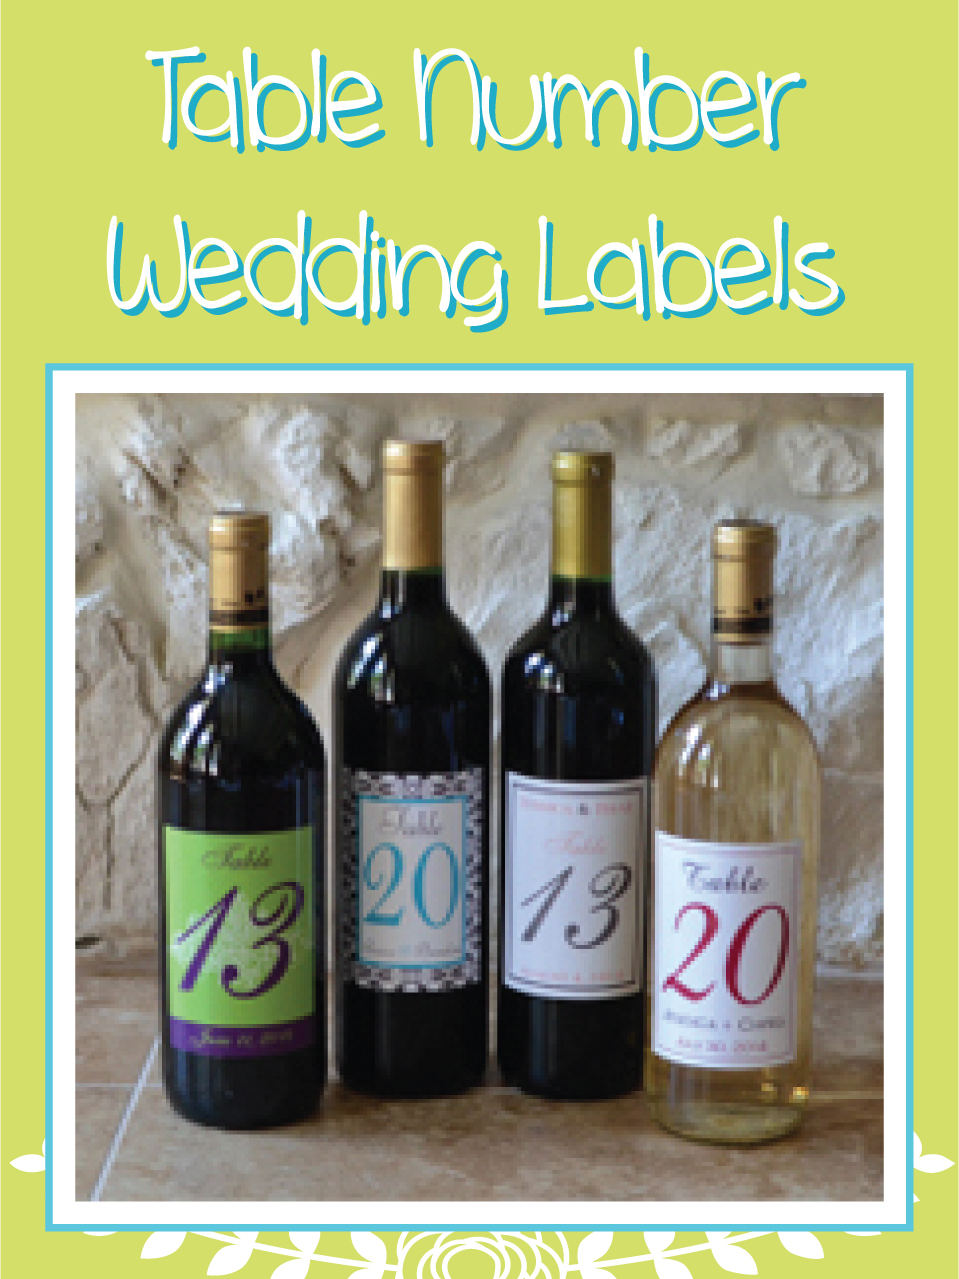 Table Number Wedding Designs